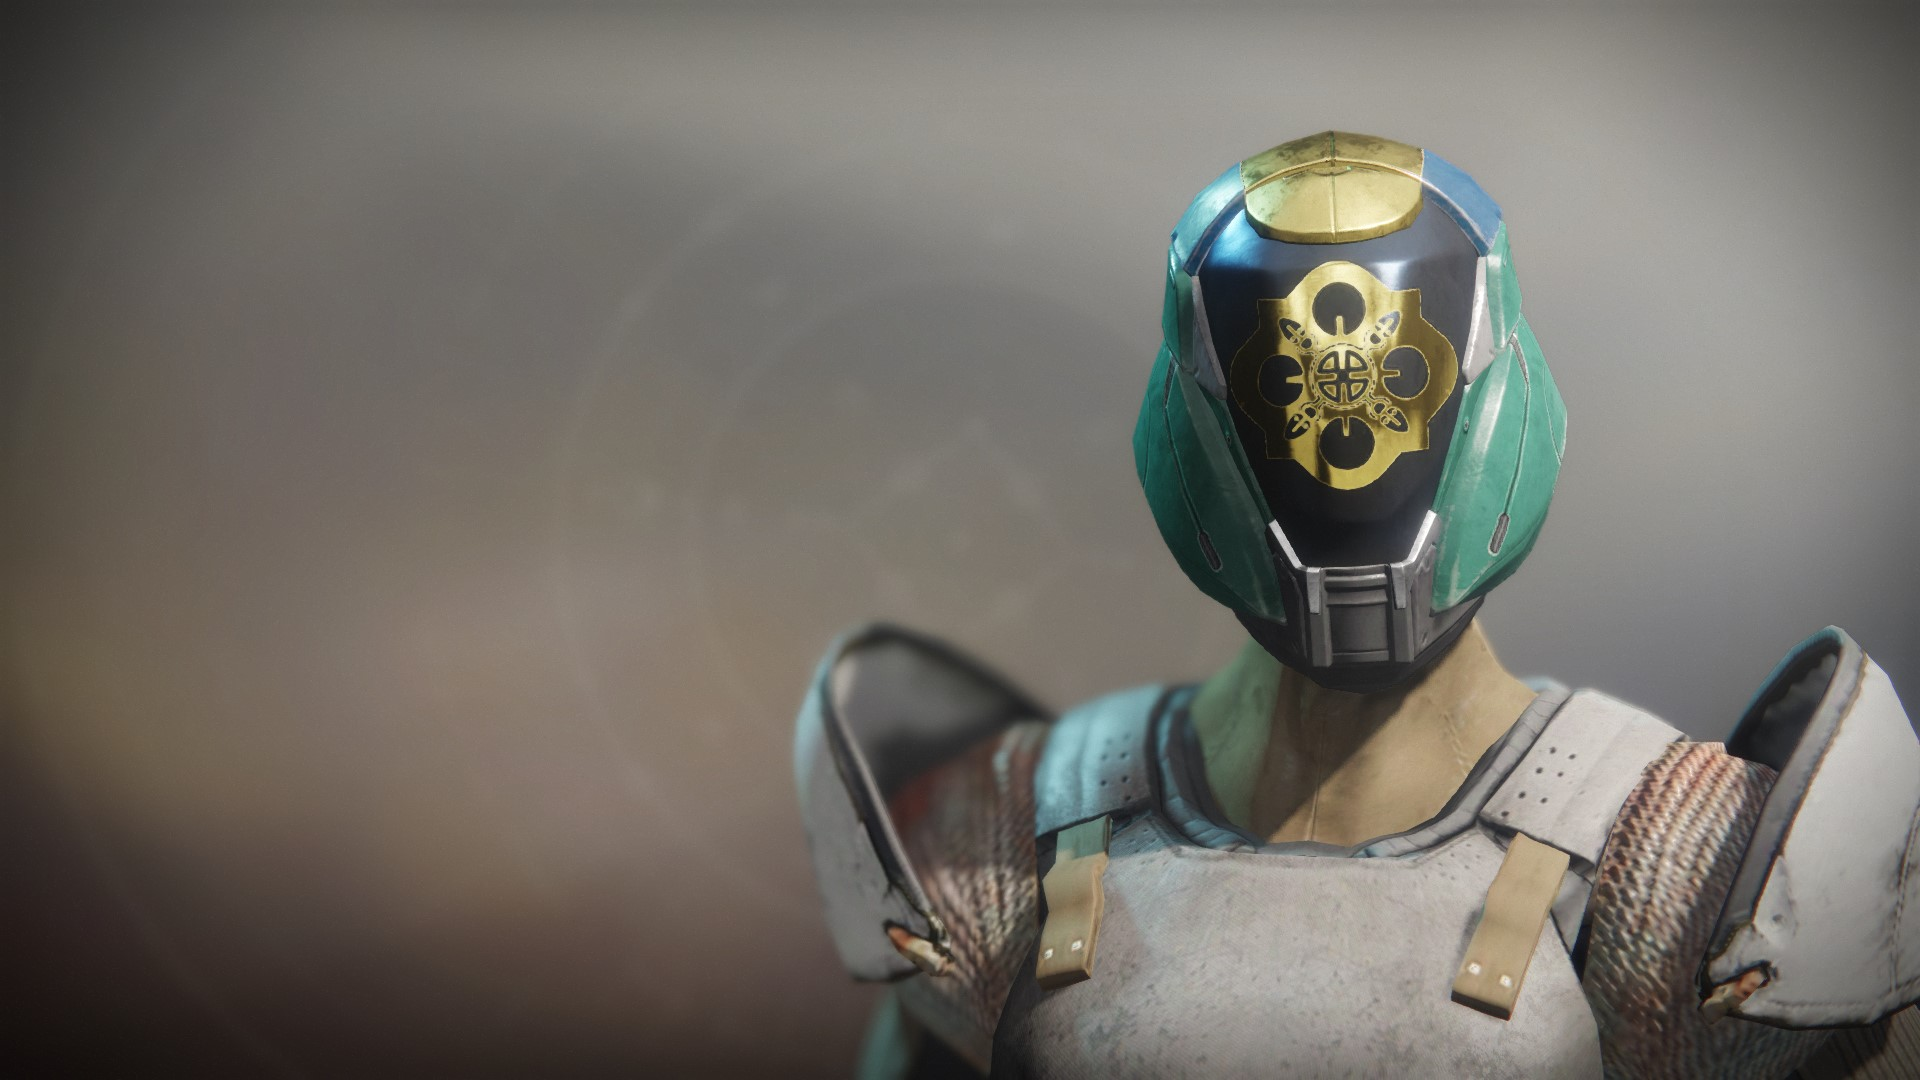 Vernal Growth Helm - Destiny 2 Legendary Helmet - Possible Rolls